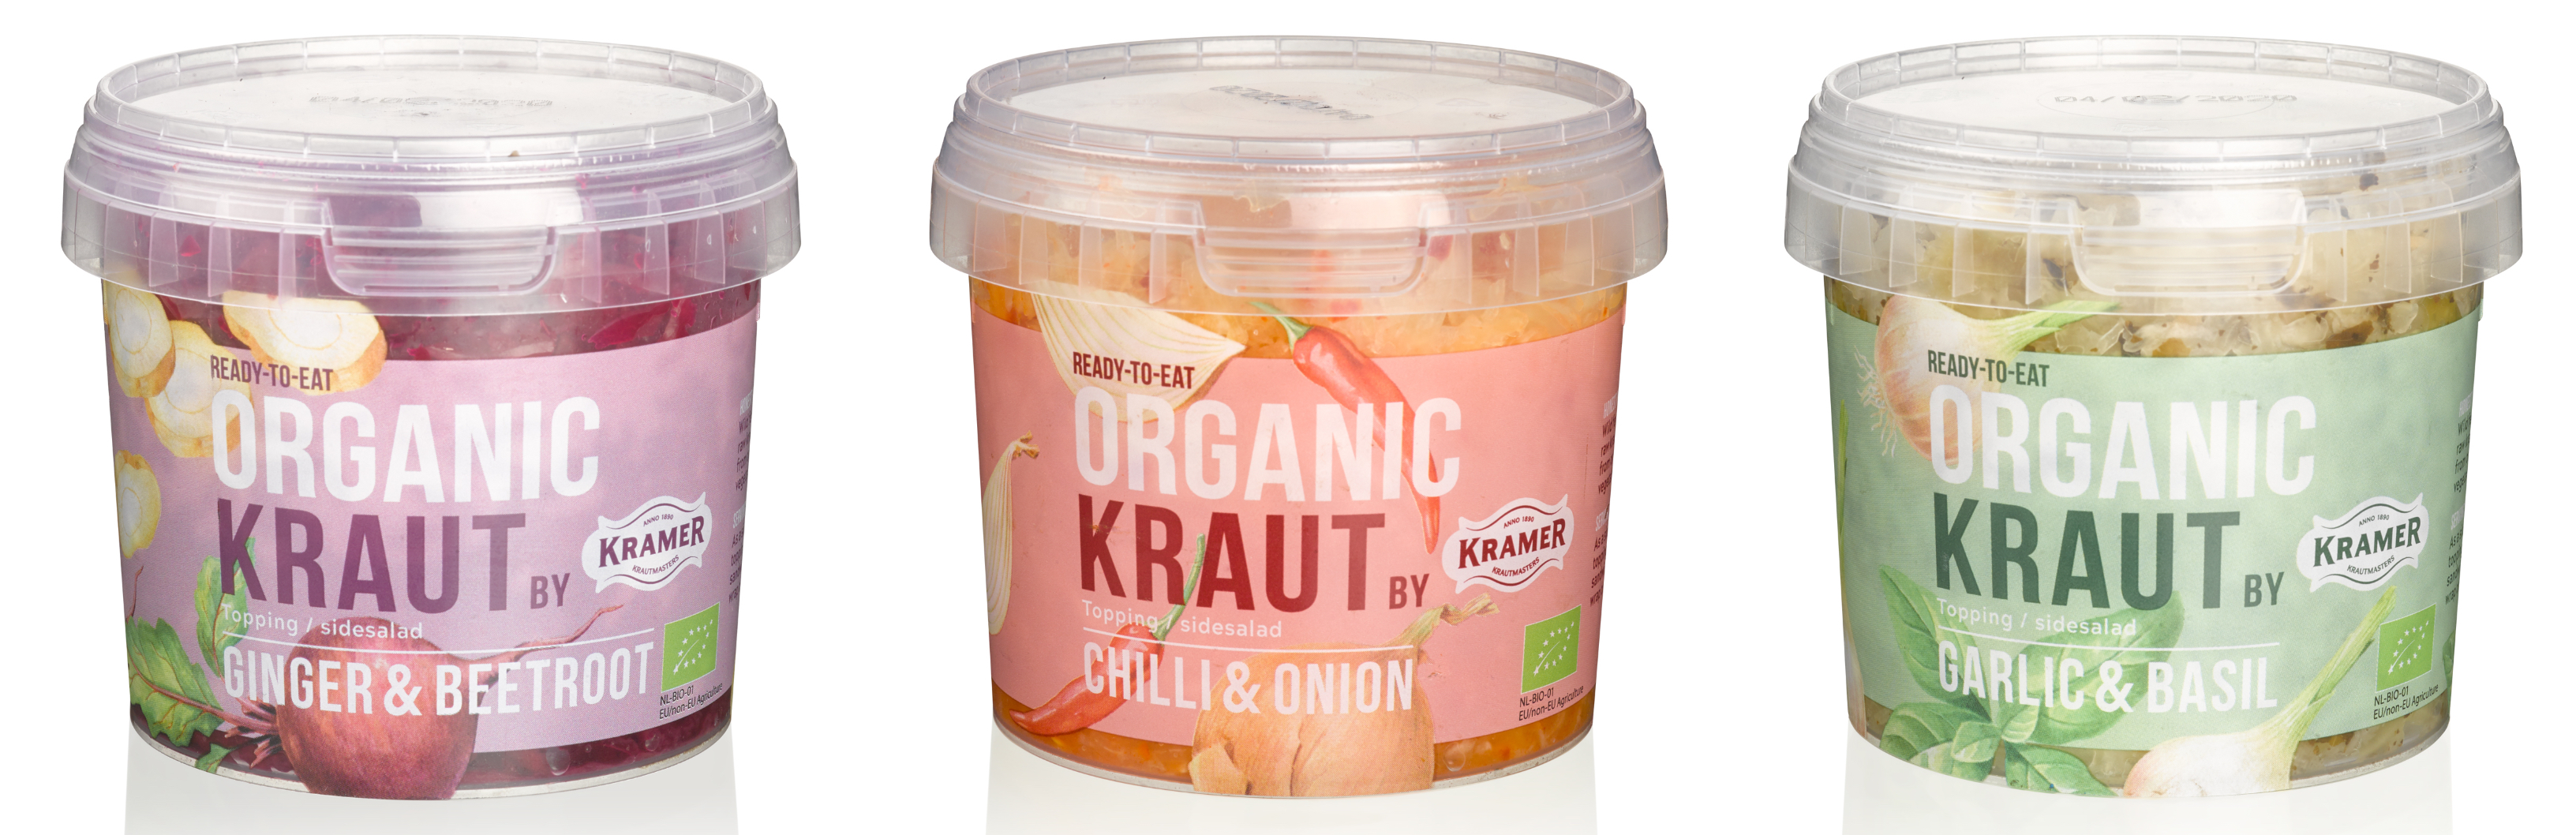 organic kraut, review, winactie, weber, barbecue